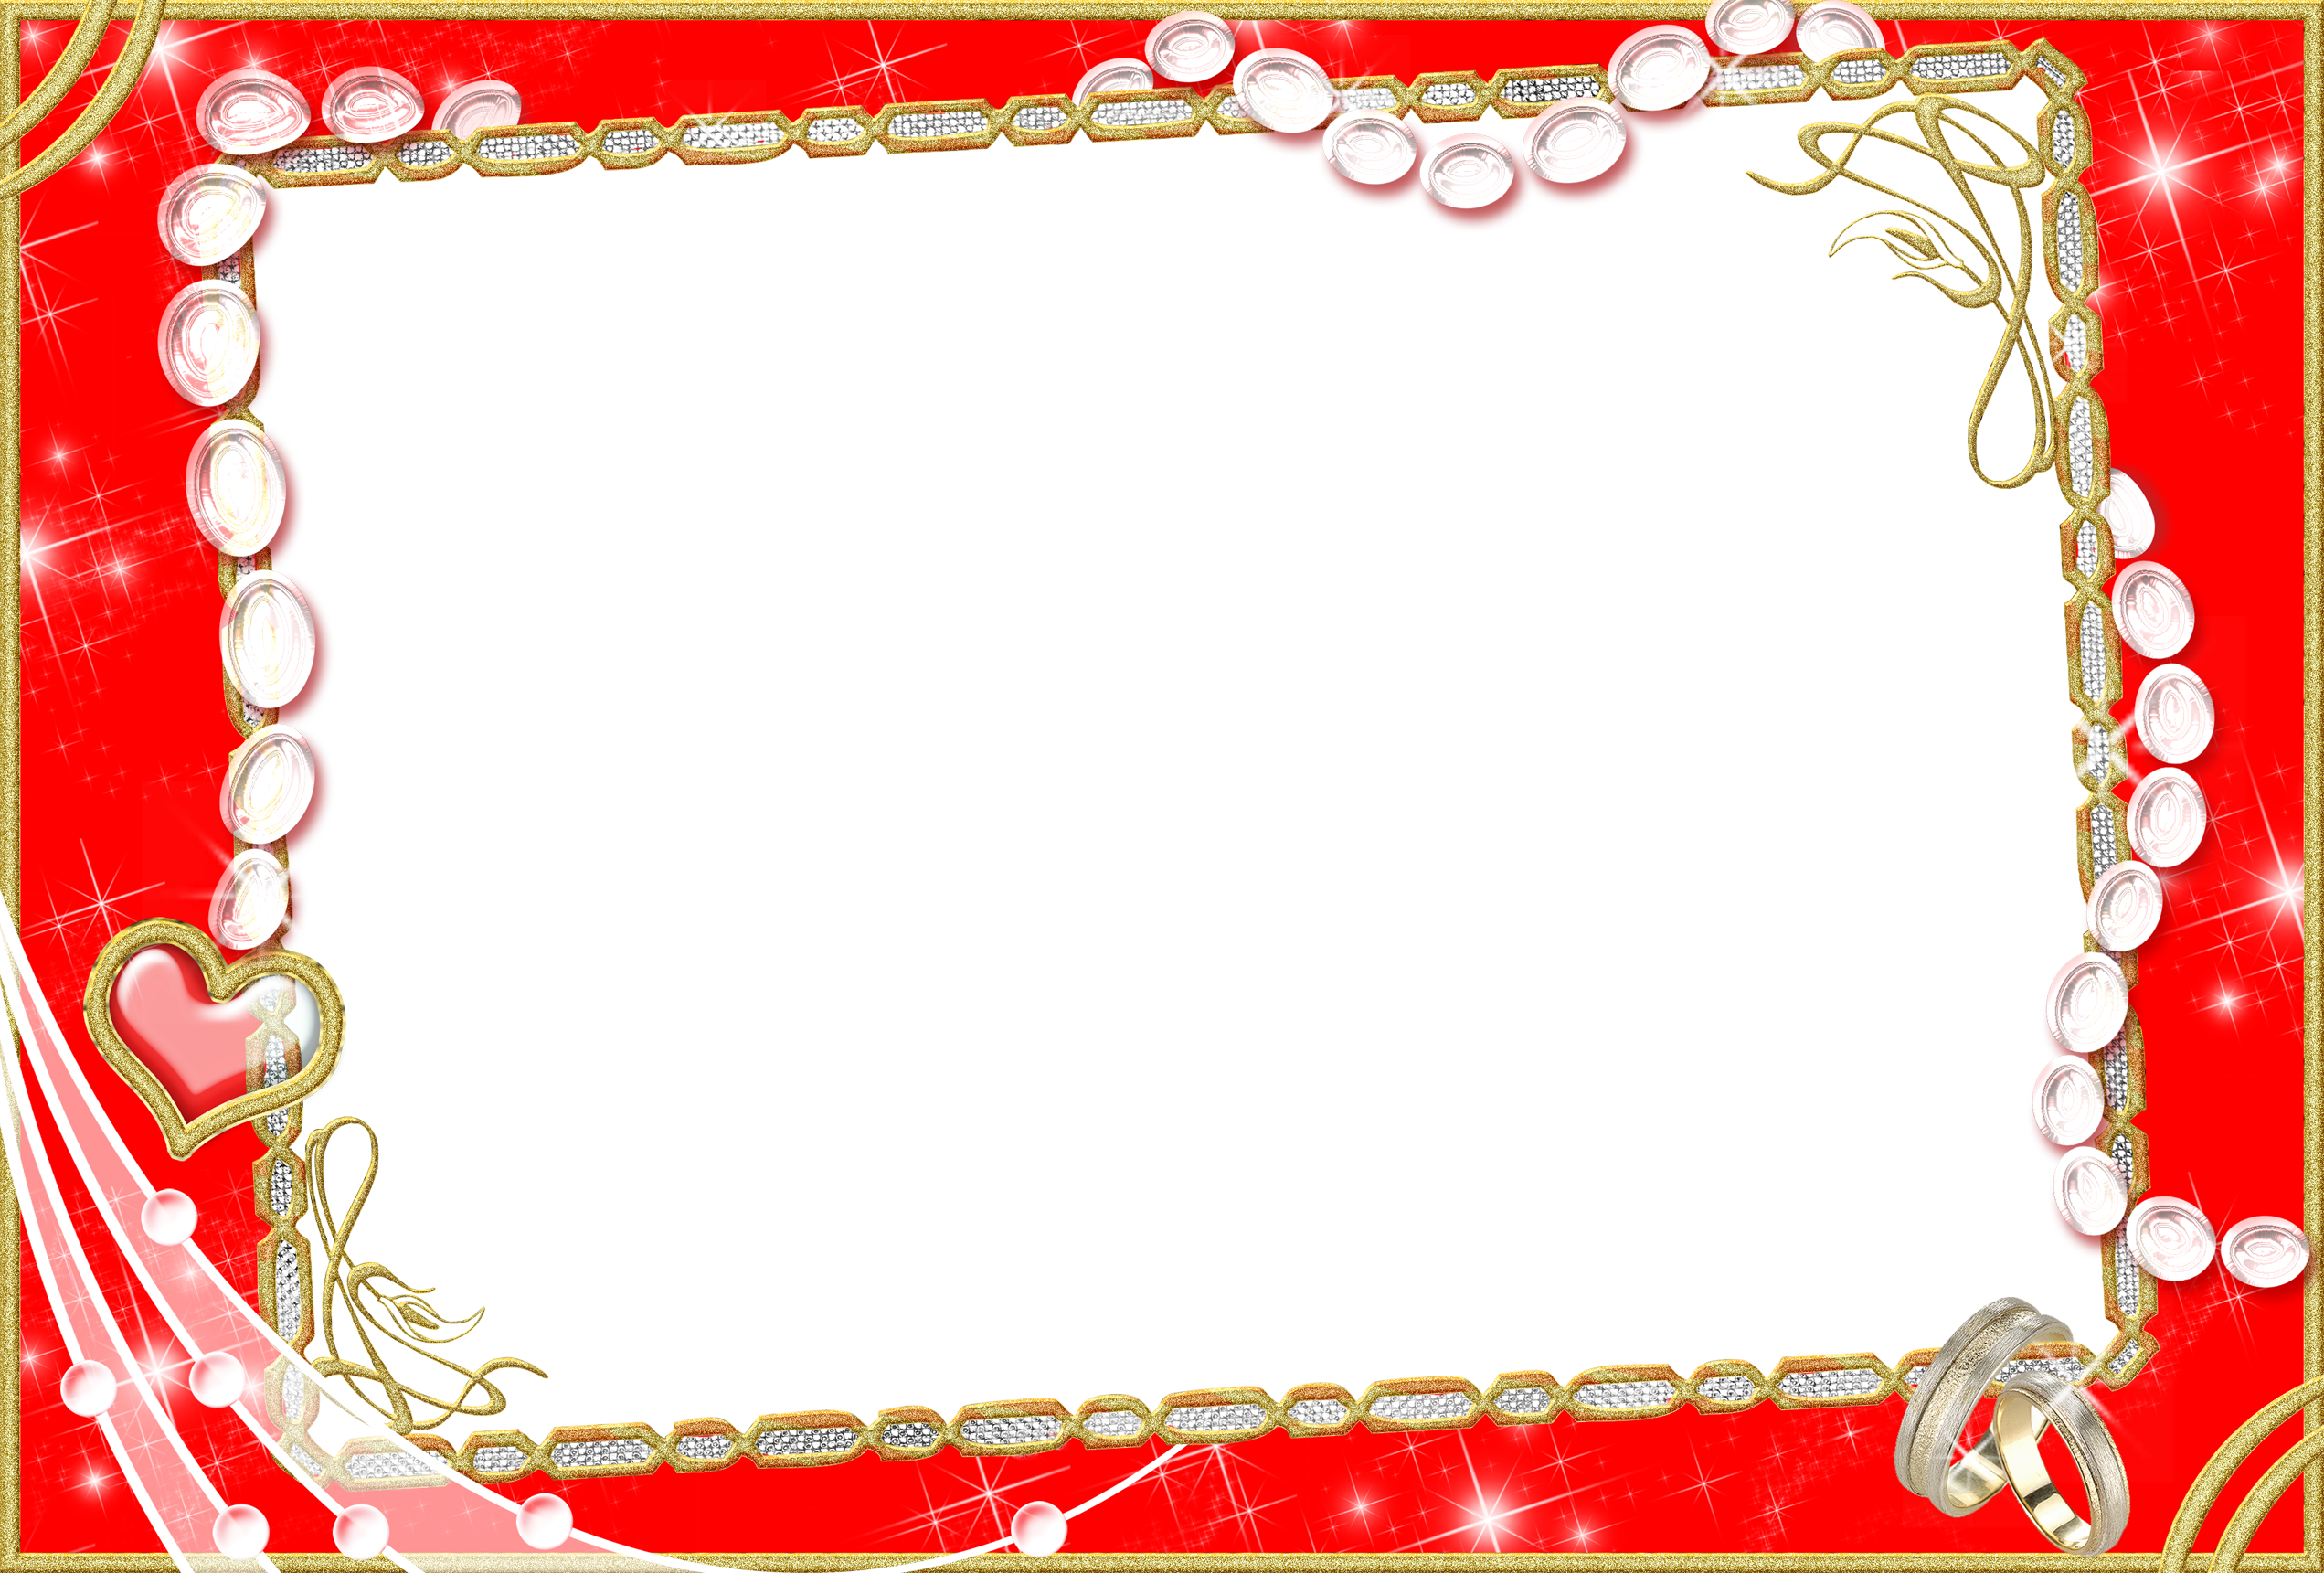 red wedding photo frame png image 24587